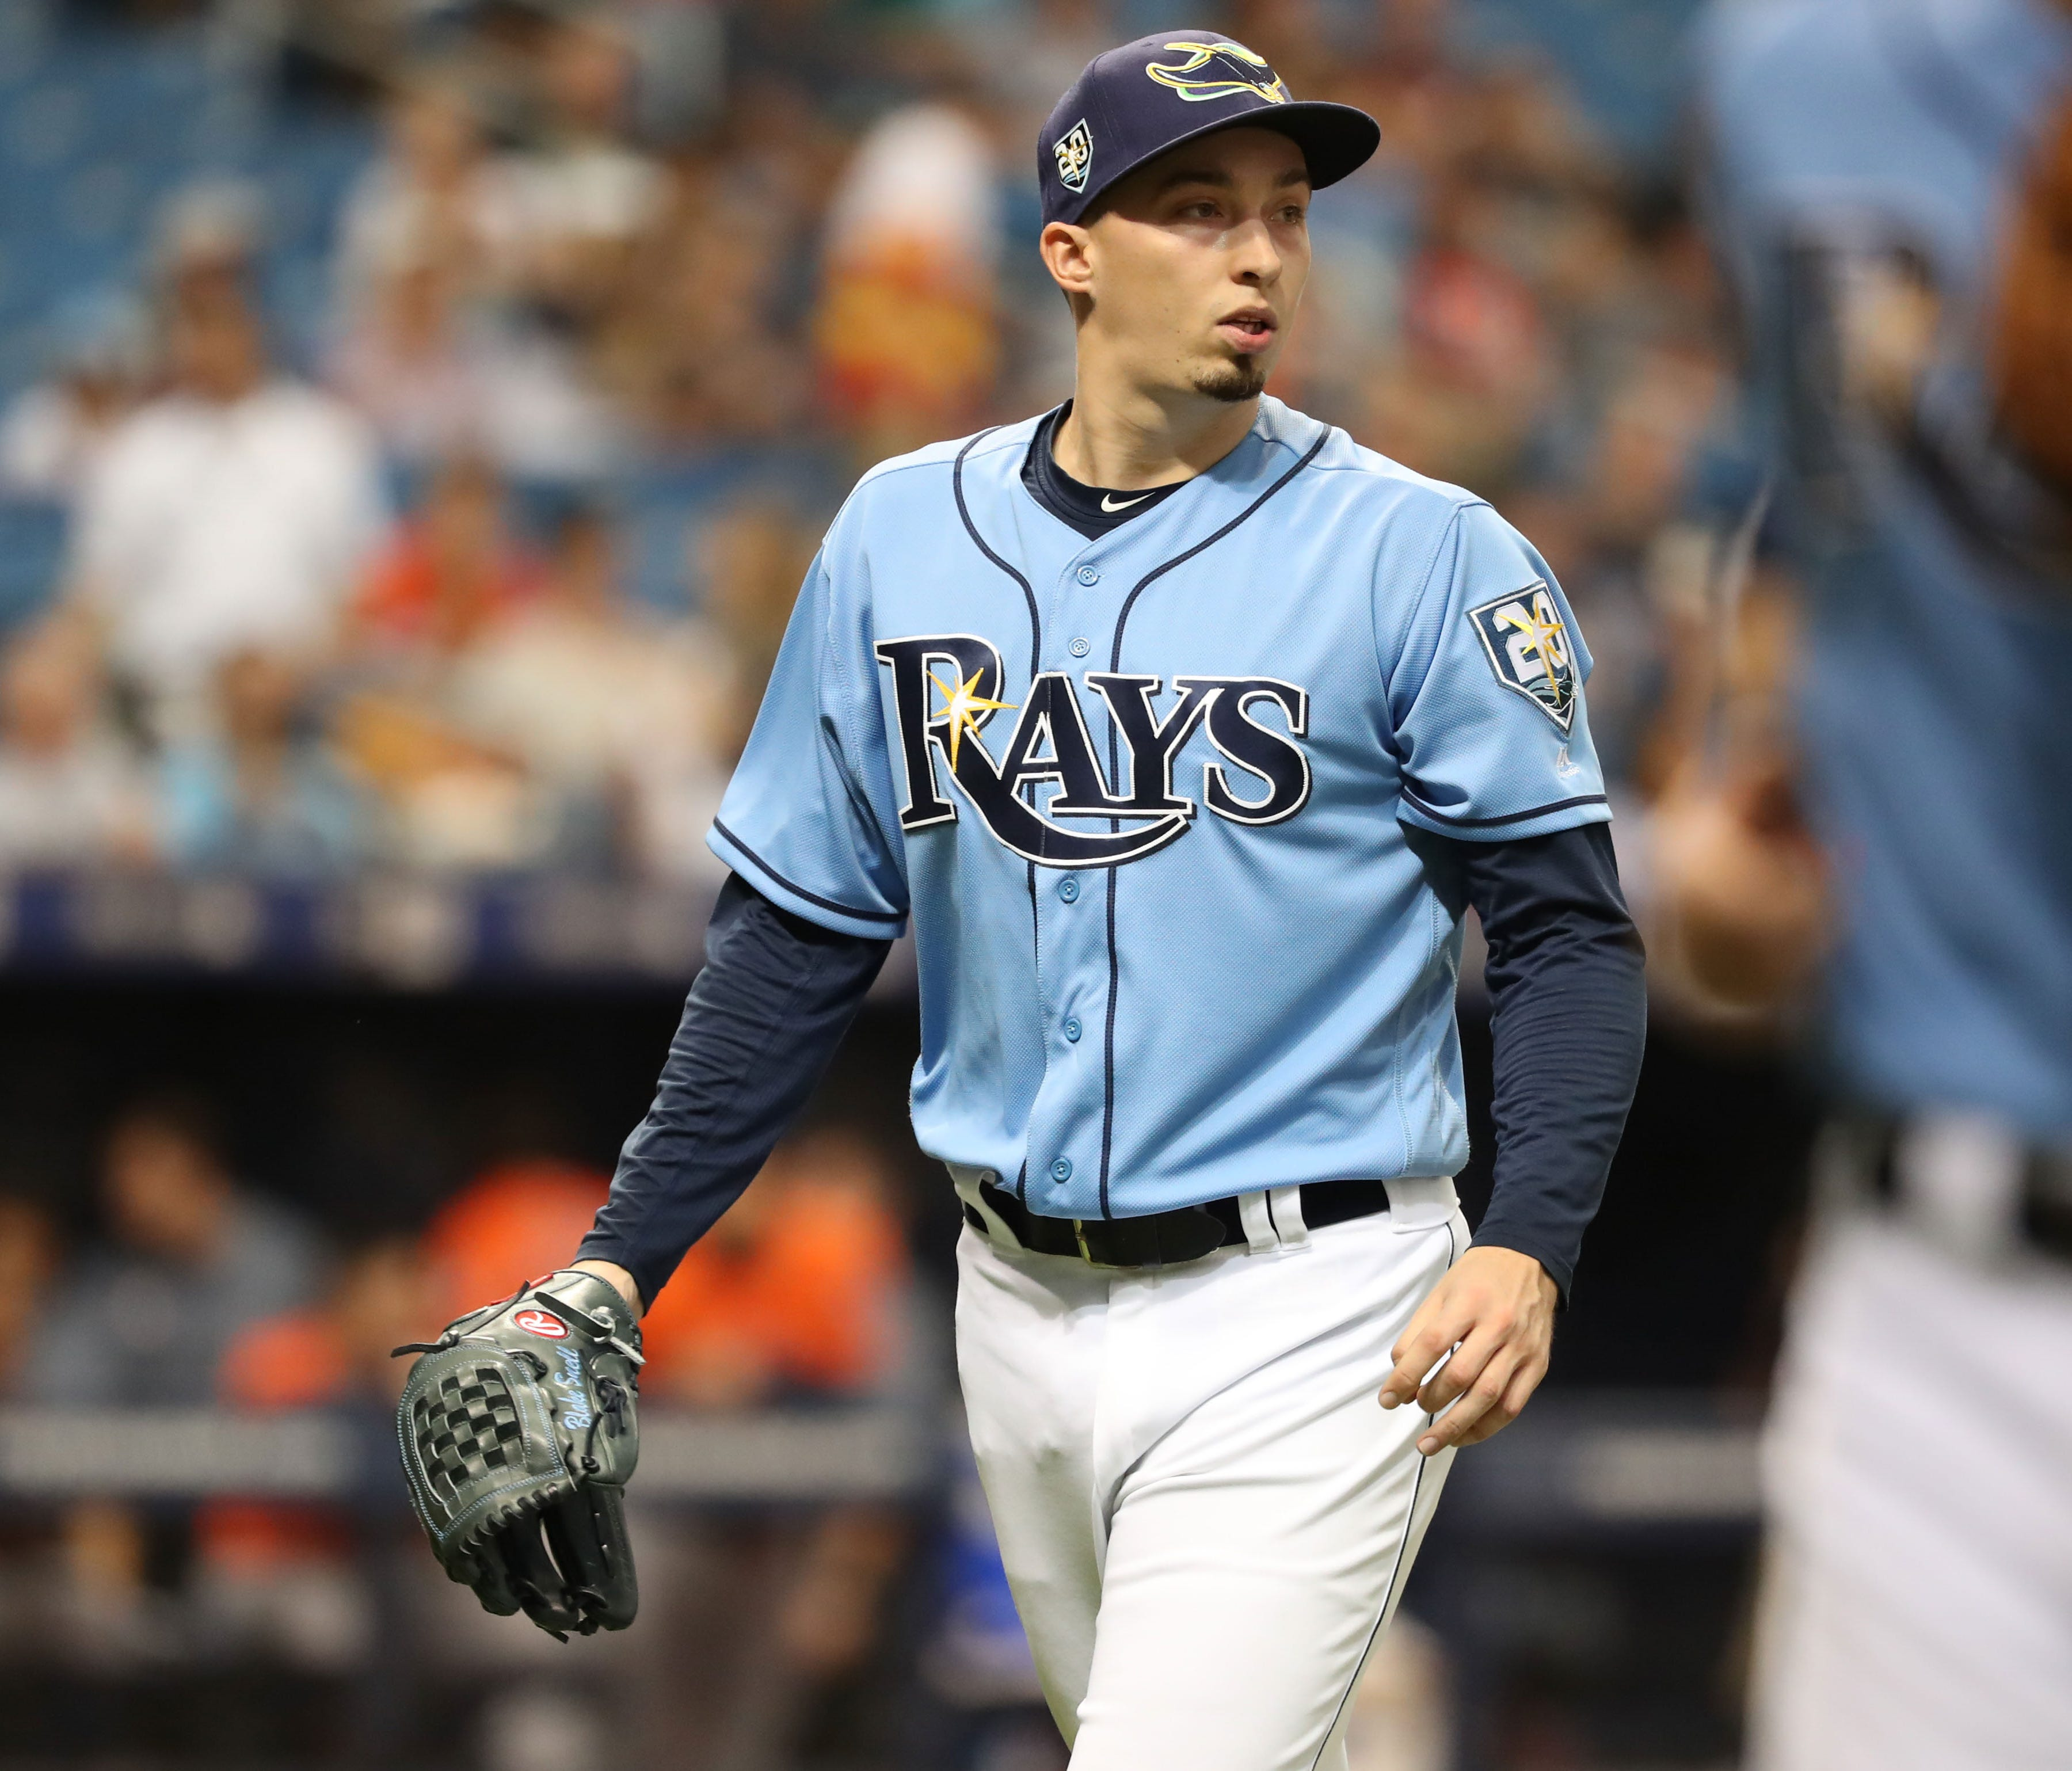 Blake Snell leads the AL in ERA (2.09) while tying for second in wins (12).